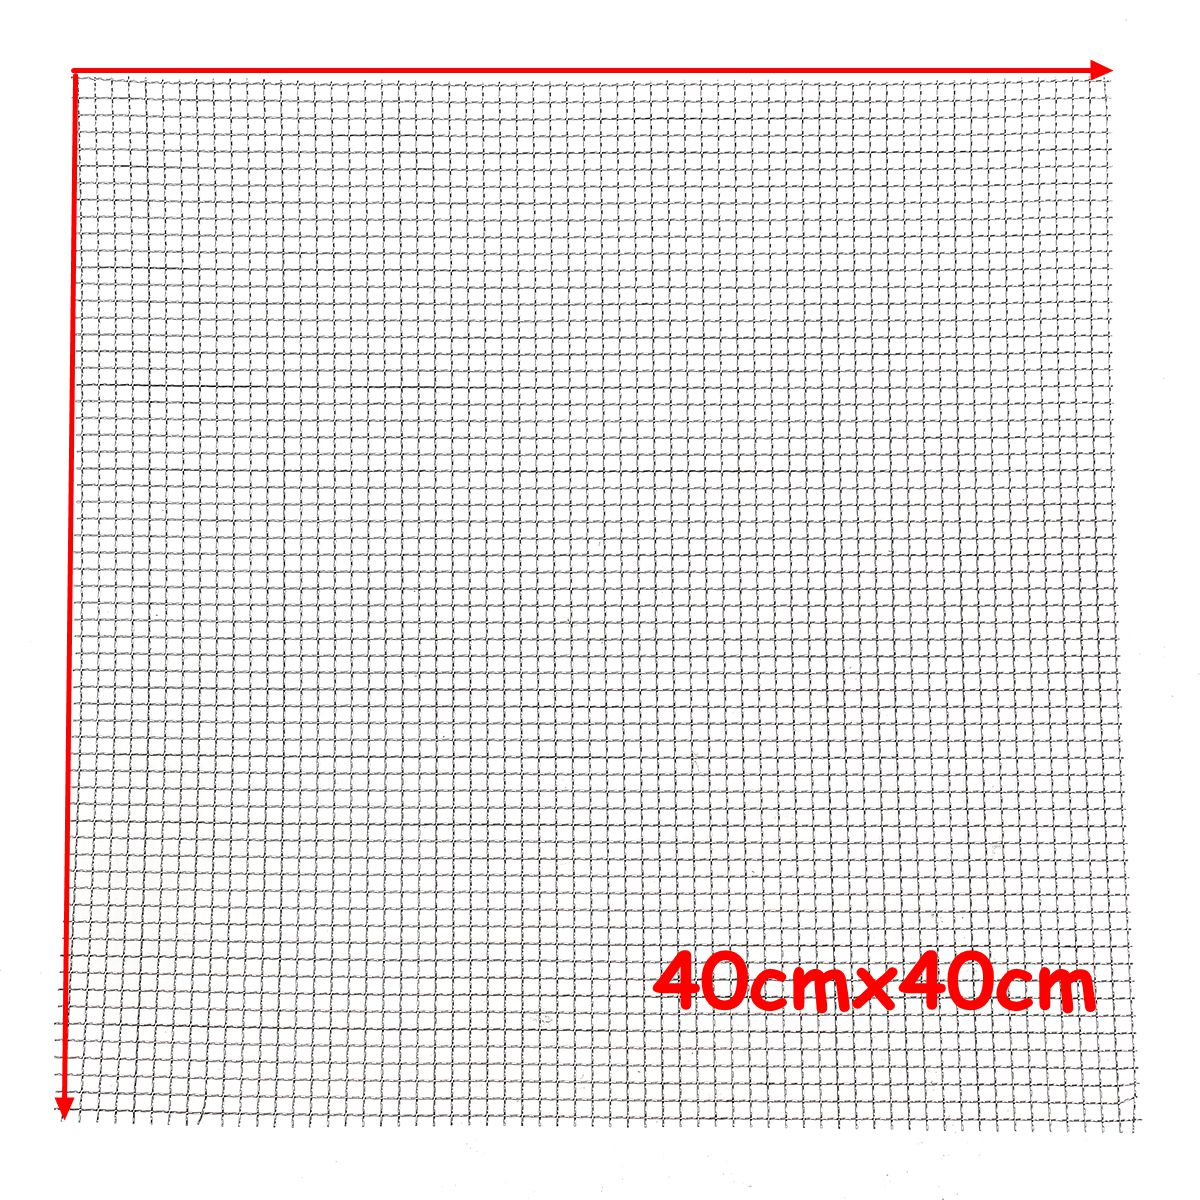 NEW Stainless Steel 304 Mesh #4 .047 Wire Cloth Screen Filter 16''x16'' 40cm x 40cm виниловые обои limonta sonetto 73321 page 9